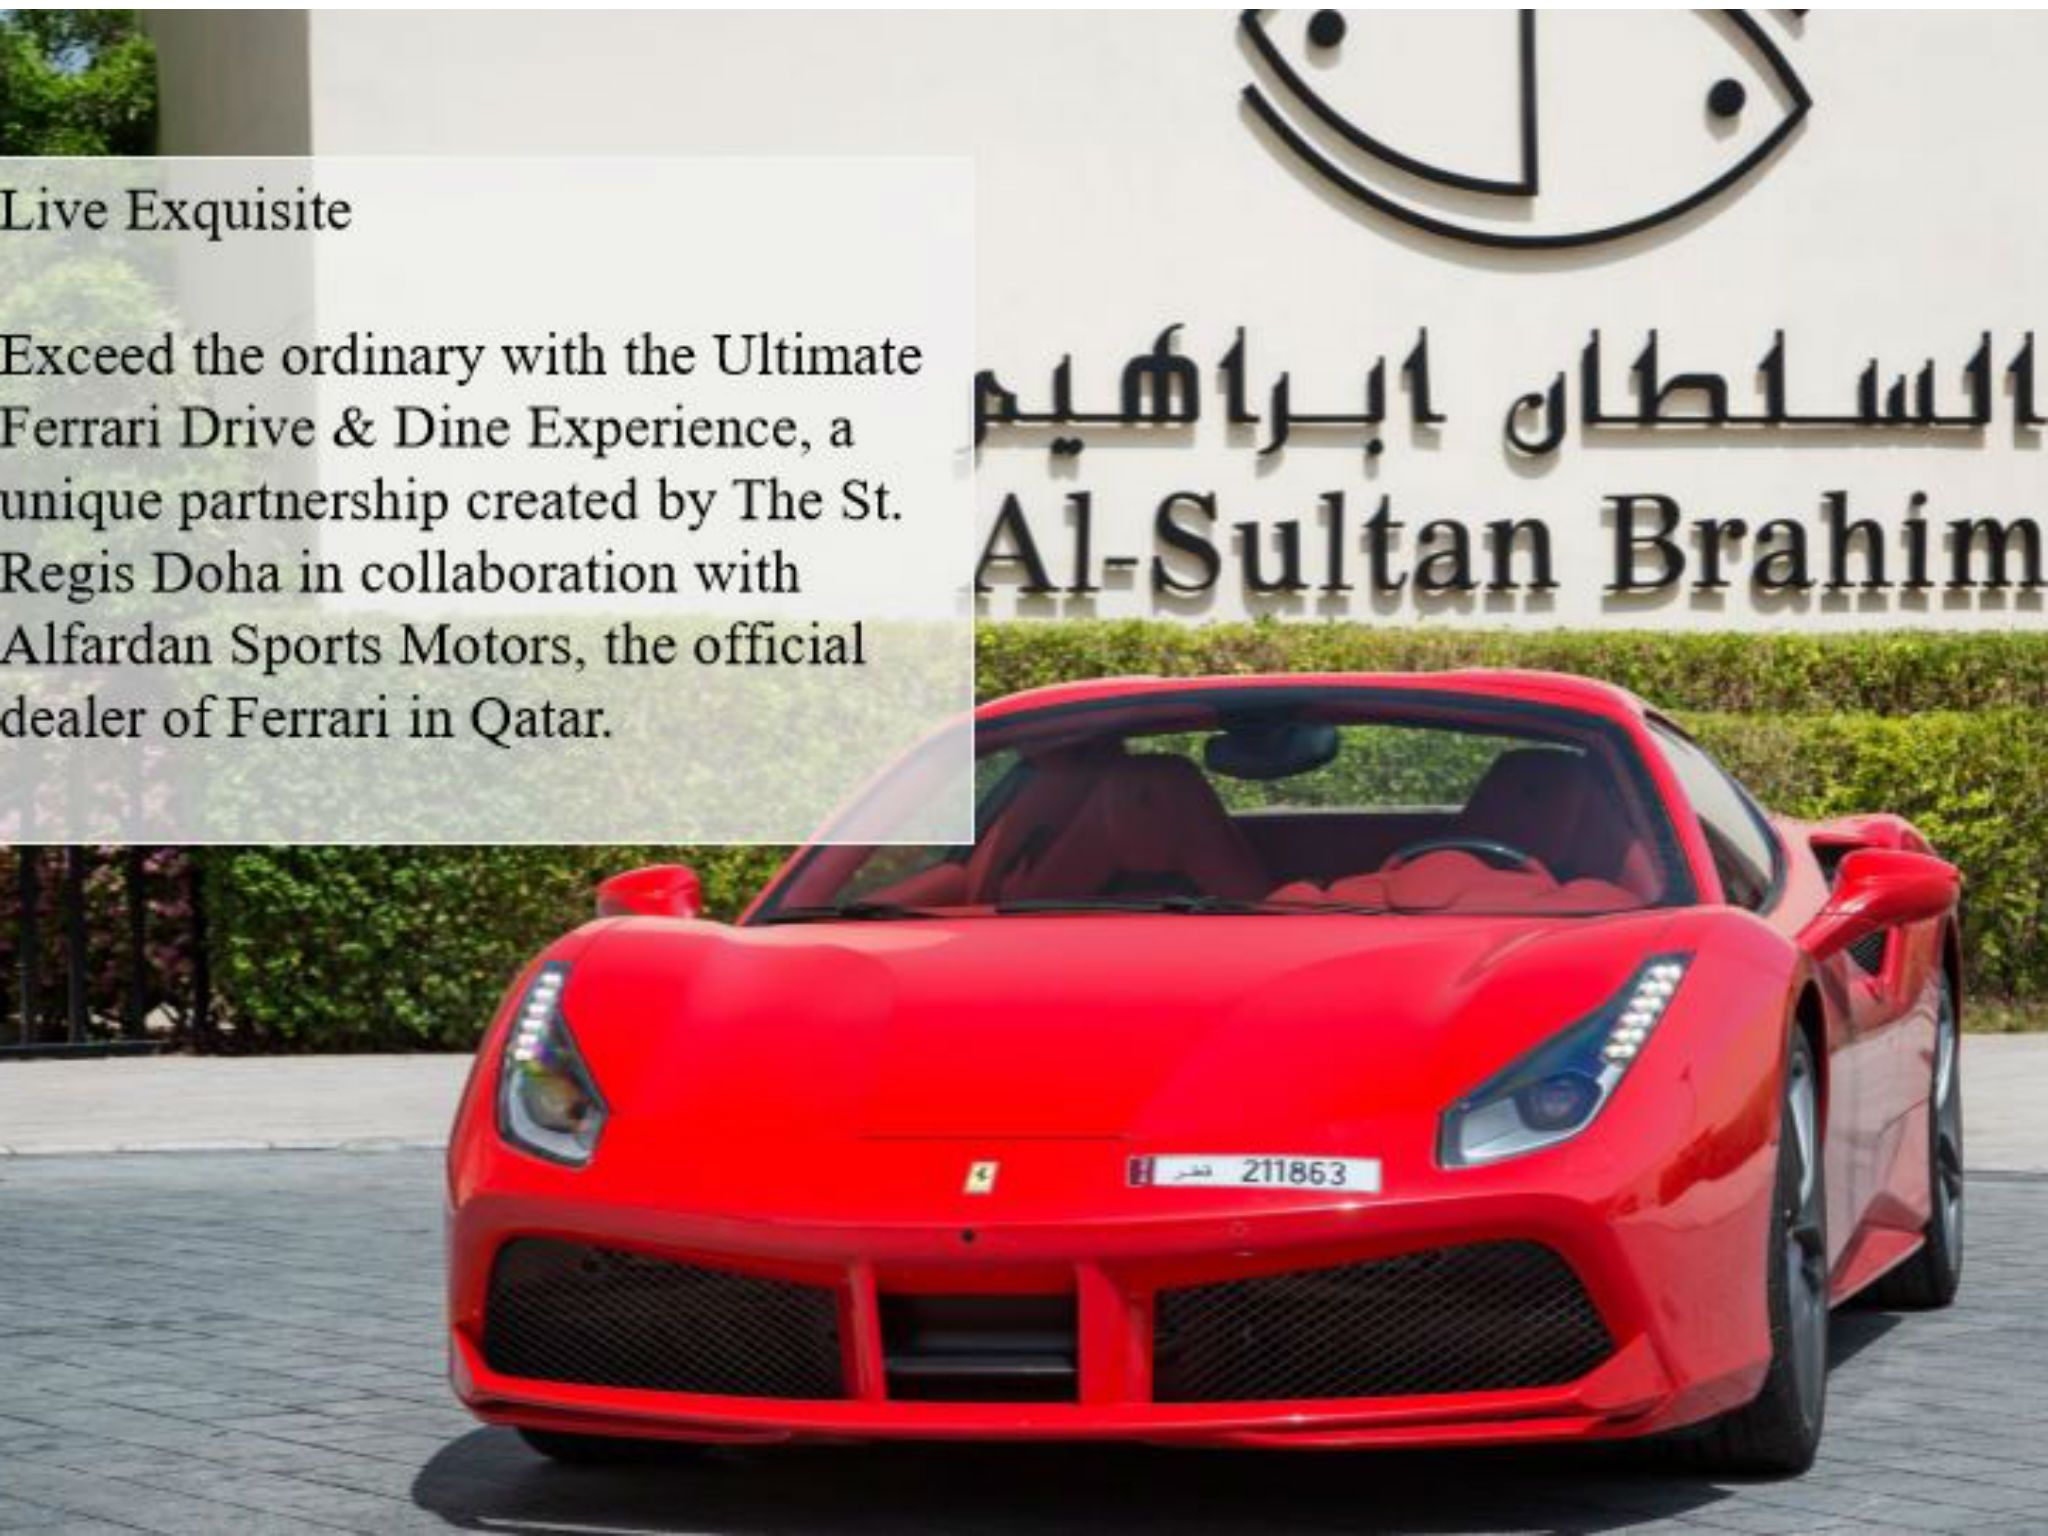 Test drive a Ferrari 458 or GTC4Lusso with the St. Regis Doha Ultimate Ferrari Drive & Dine experience